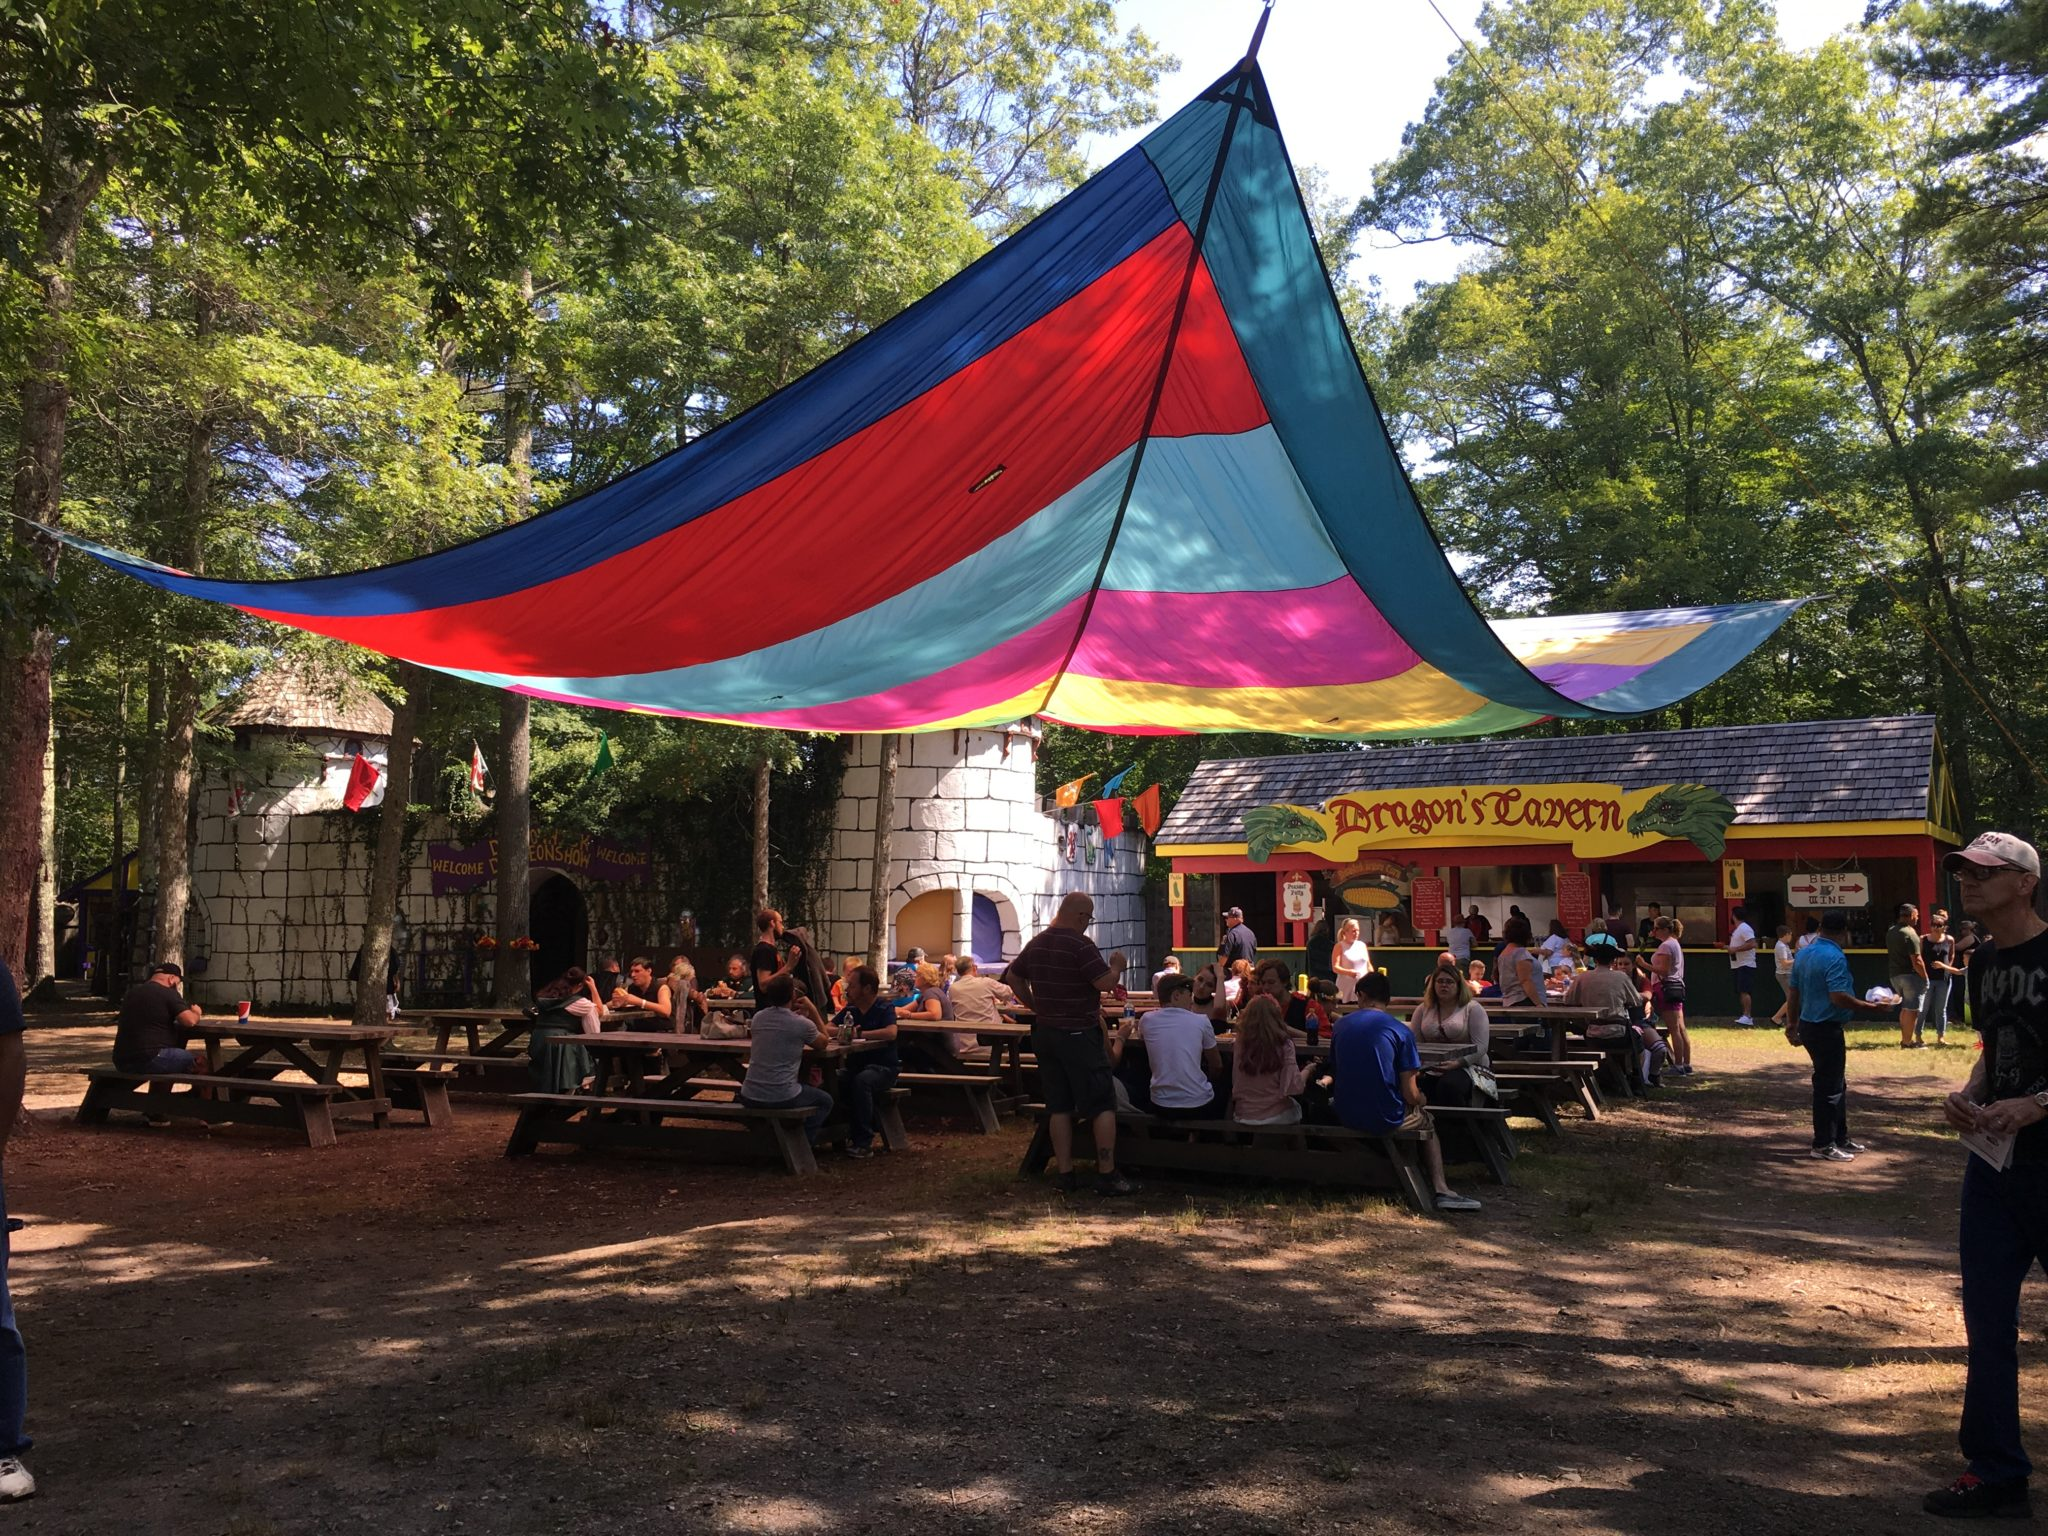 There are lots of great food options at King Richard's Faire!